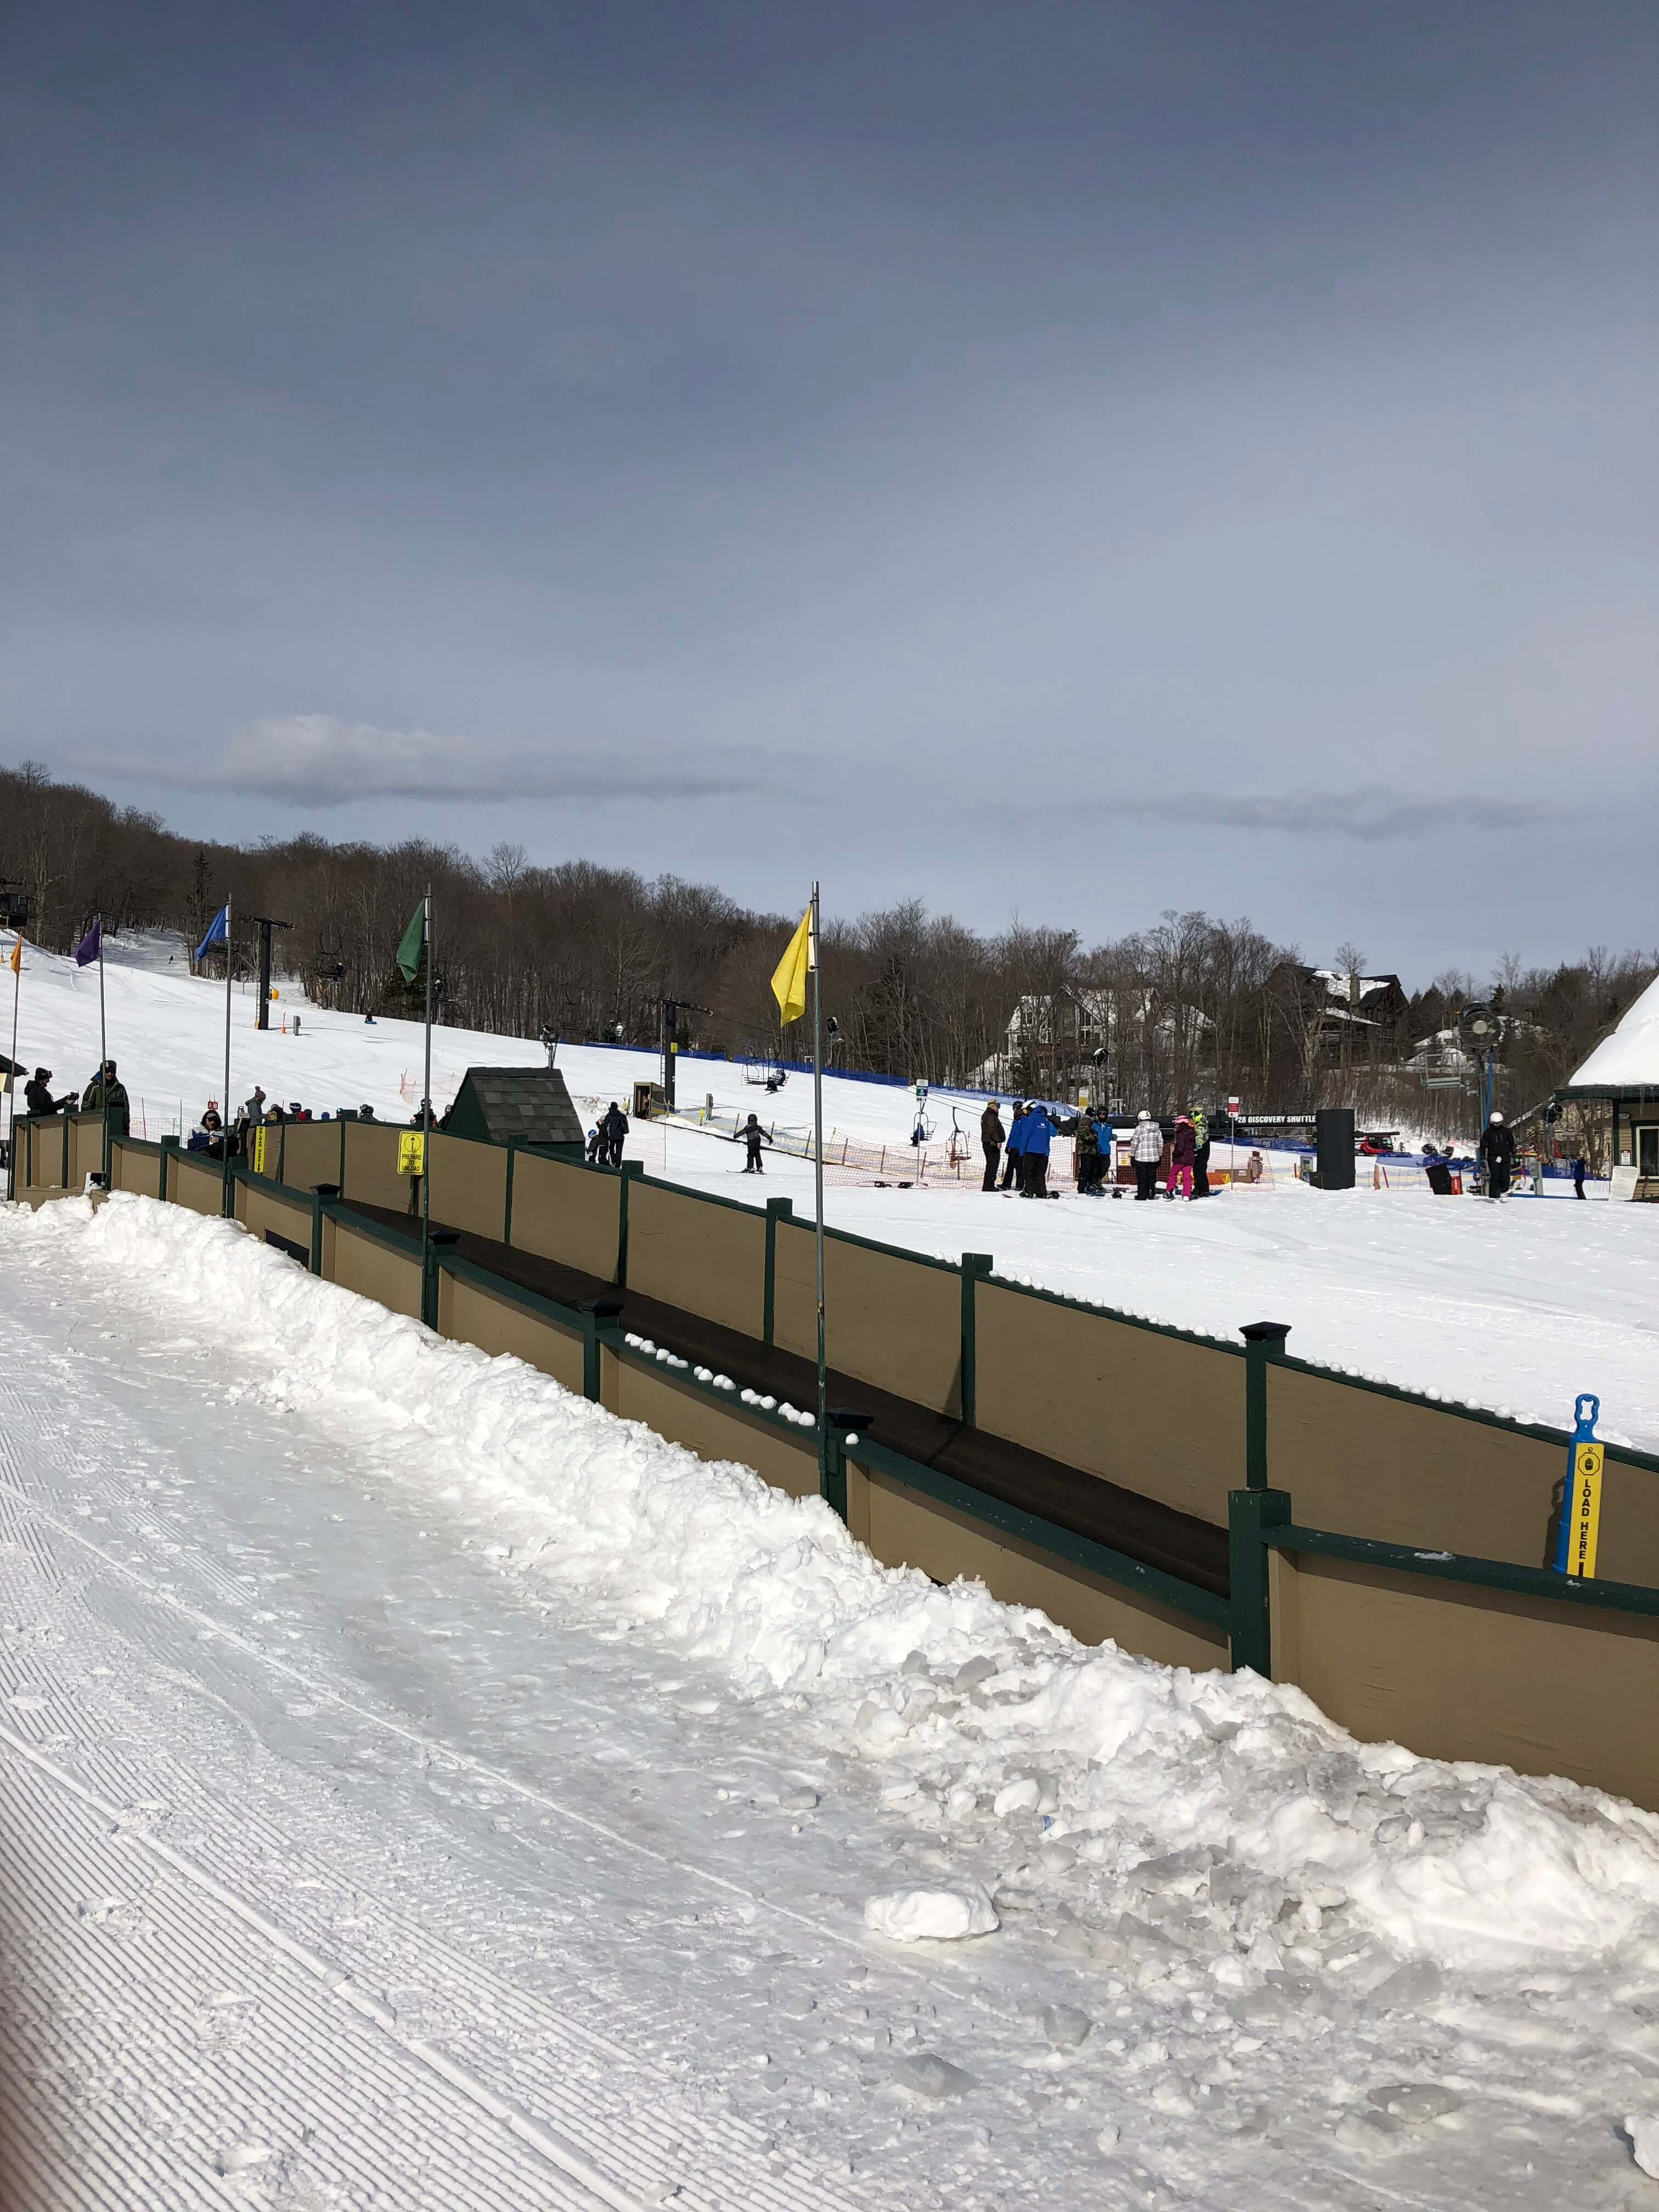 magic carpet learning to ski as an adult in vermont